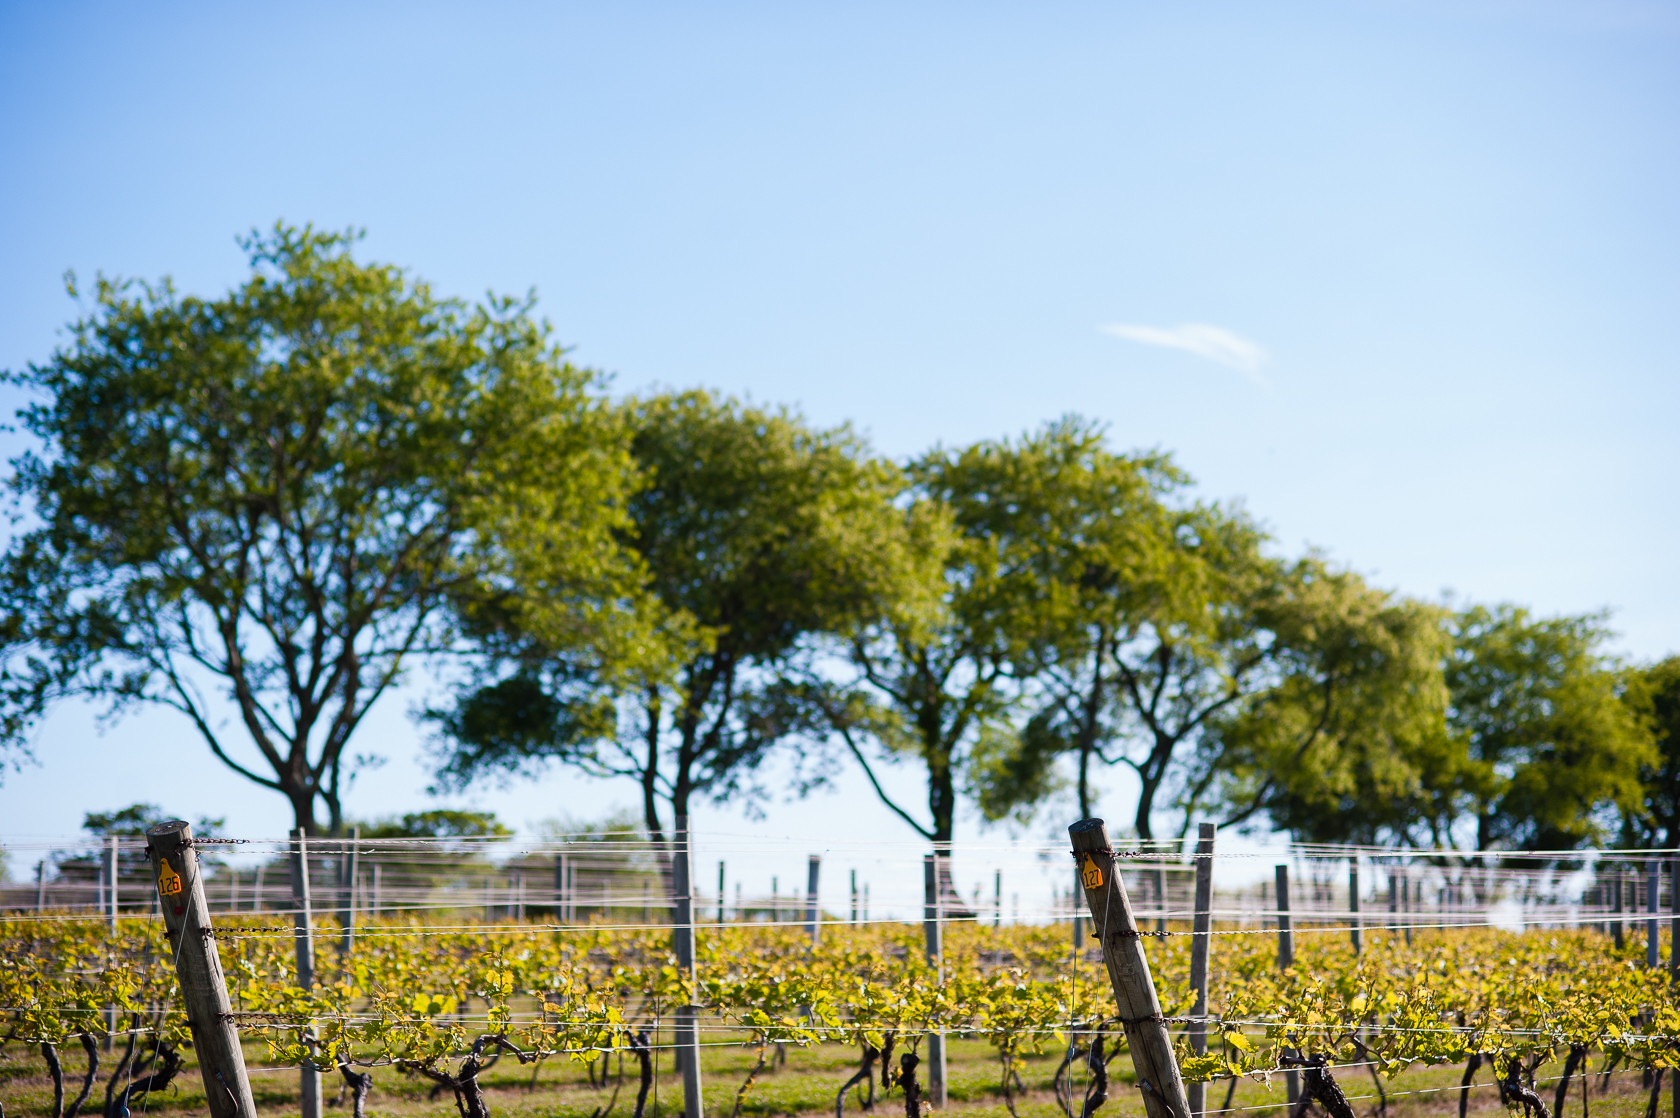 gorgeous vineyard was the setting for this summertime vineyard wedding